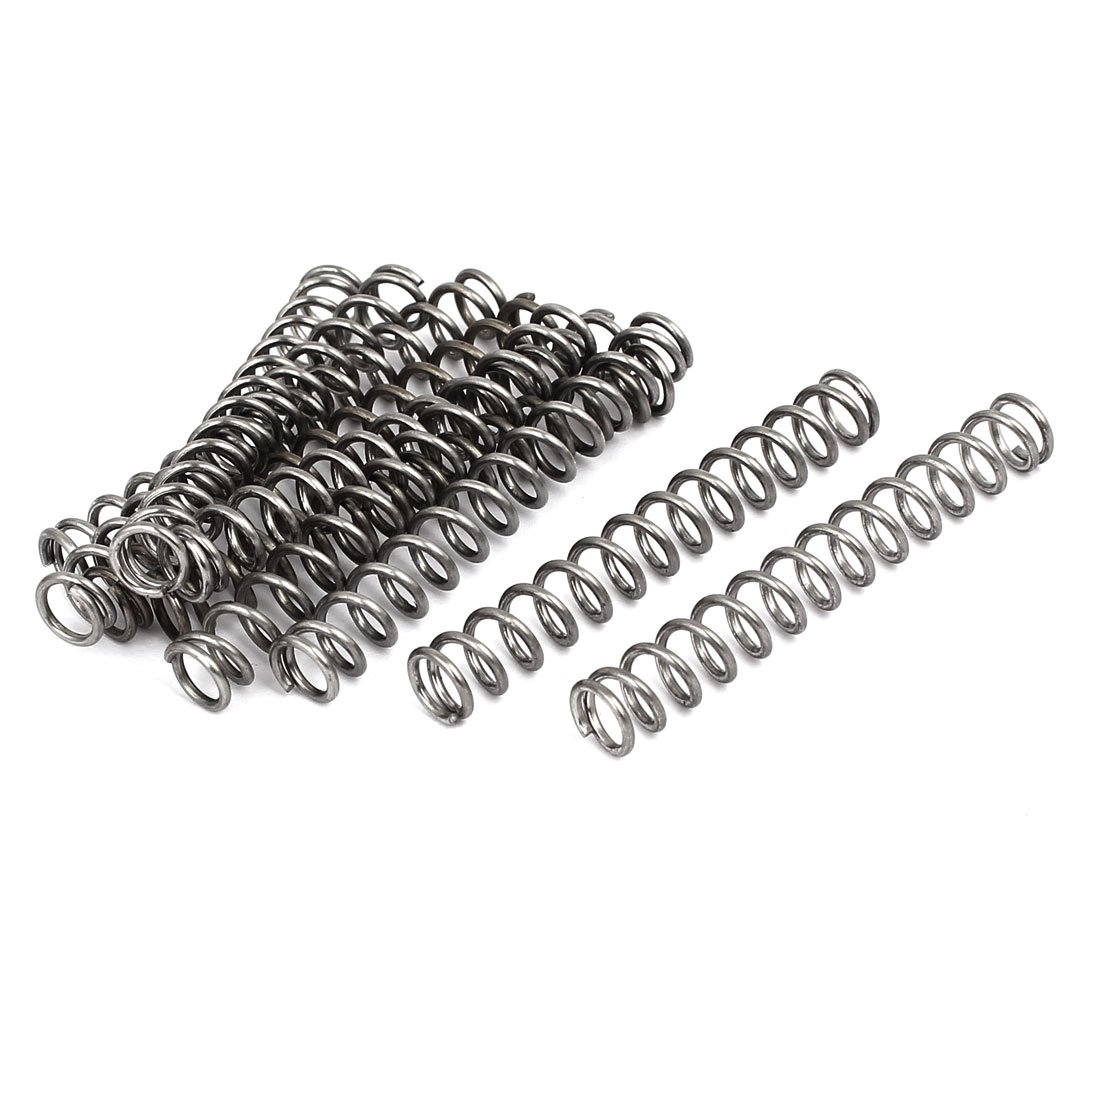 sourcingmap 1mmx7mmx50mm 304 Stainless Steel Compression Springs Silver Tone 10pcs a17020800ux1253